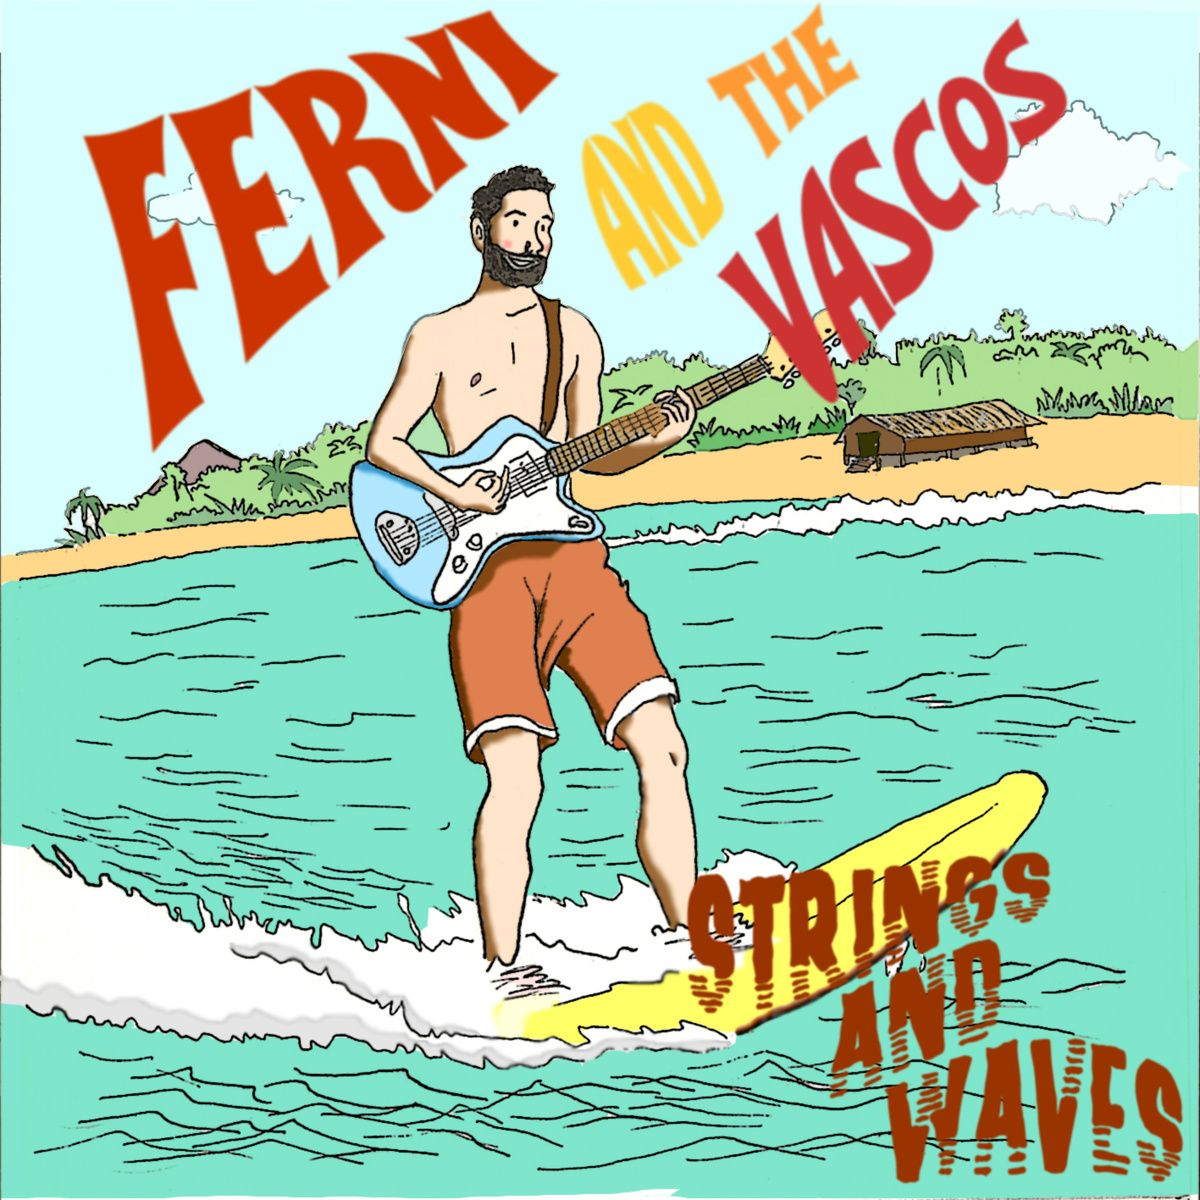 Ferni and the Vascos - Strings and Waves